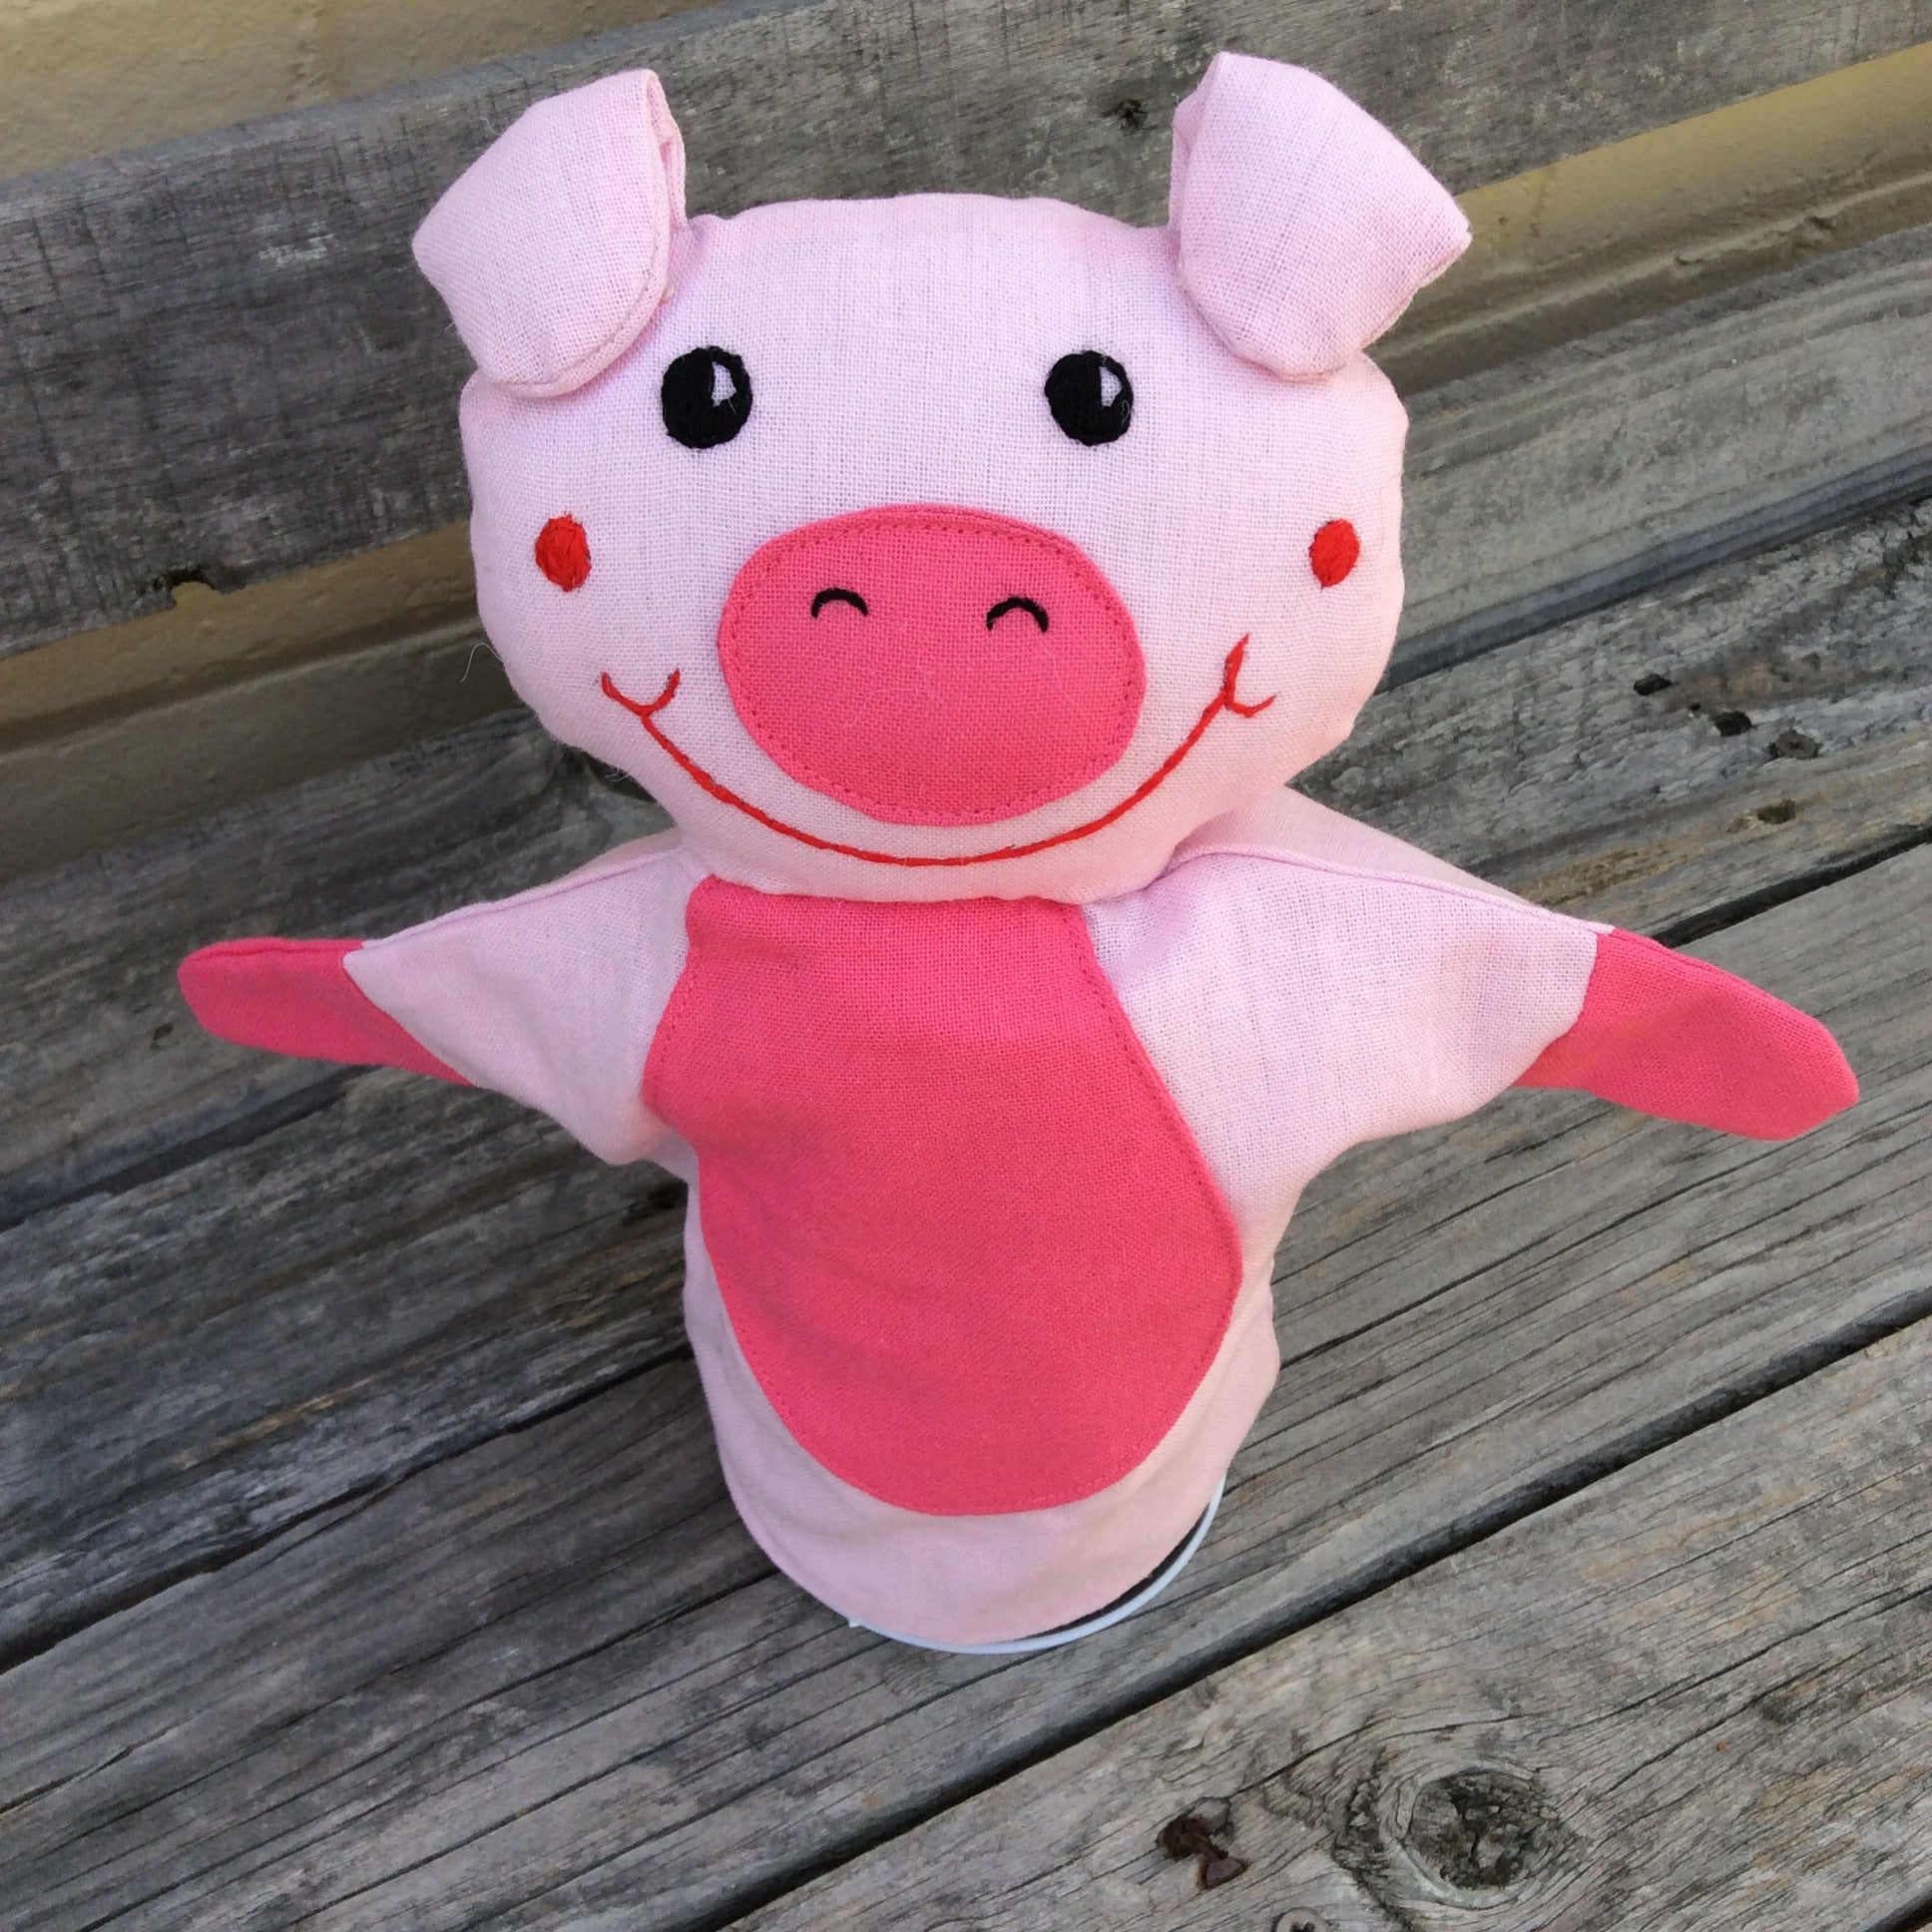 Puppet Pig Toy